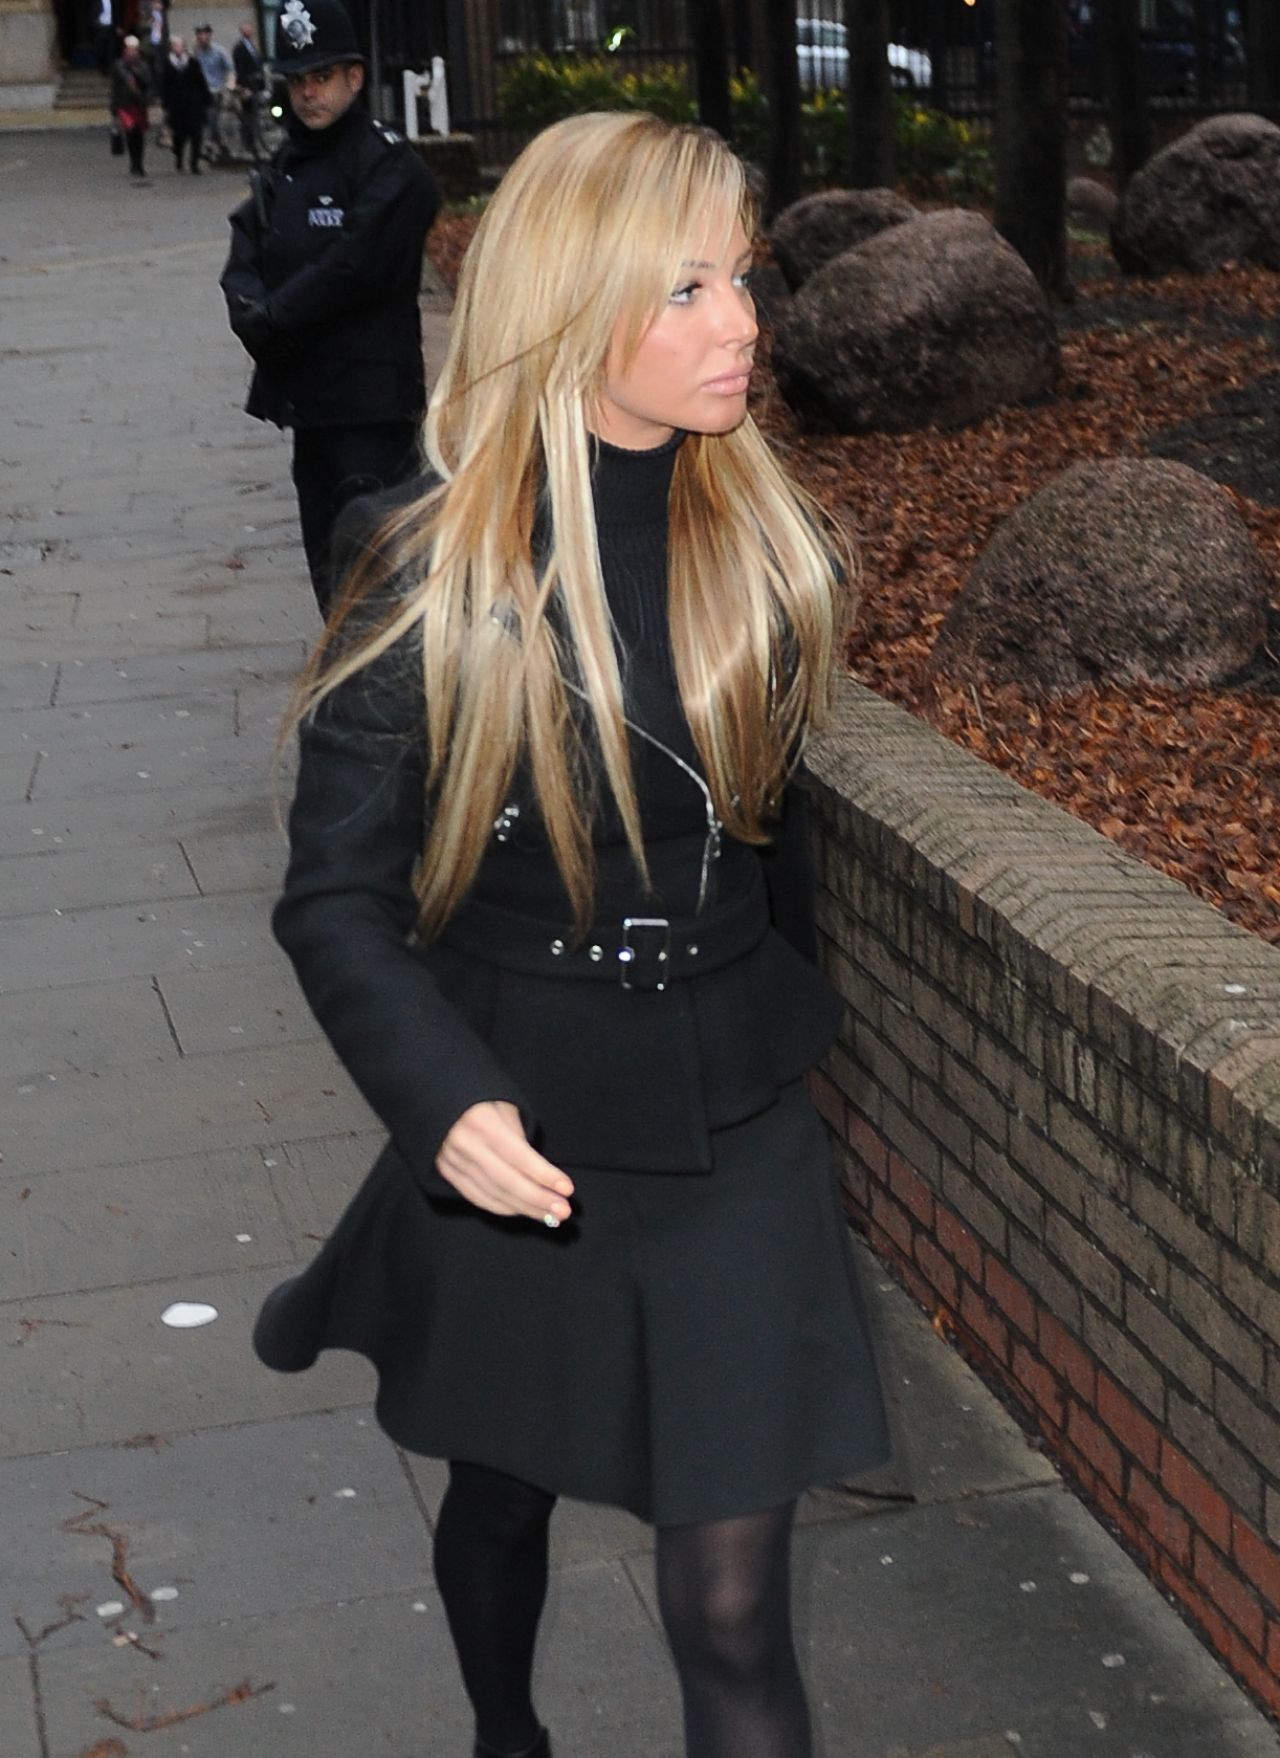 Tulisa Contostavlos  Arrives at Southwark Crown Court - United Kingdom January 9, 2014